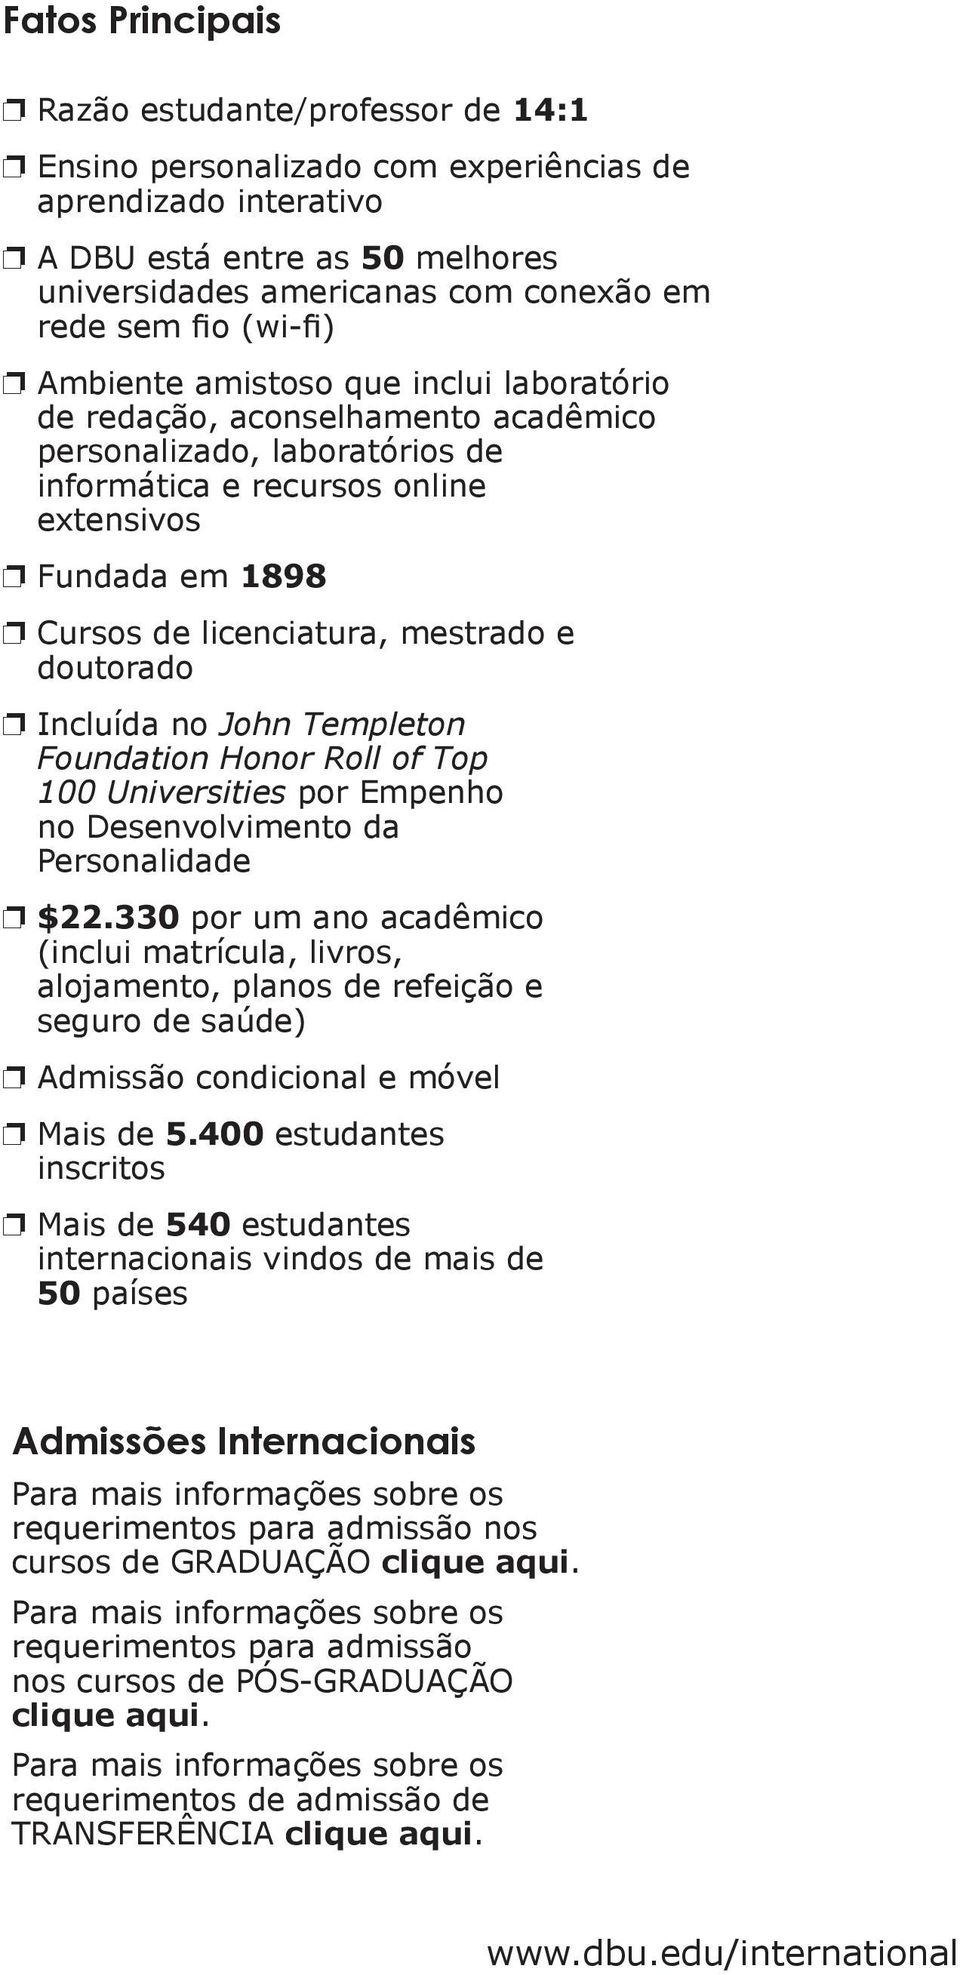 licenciatura, mestrado e doutorado p Incluída no John Templeton Foundation Honor Roll of Top 100 Universities por Empenho no Desenvolvimento da Personalidade p $22.